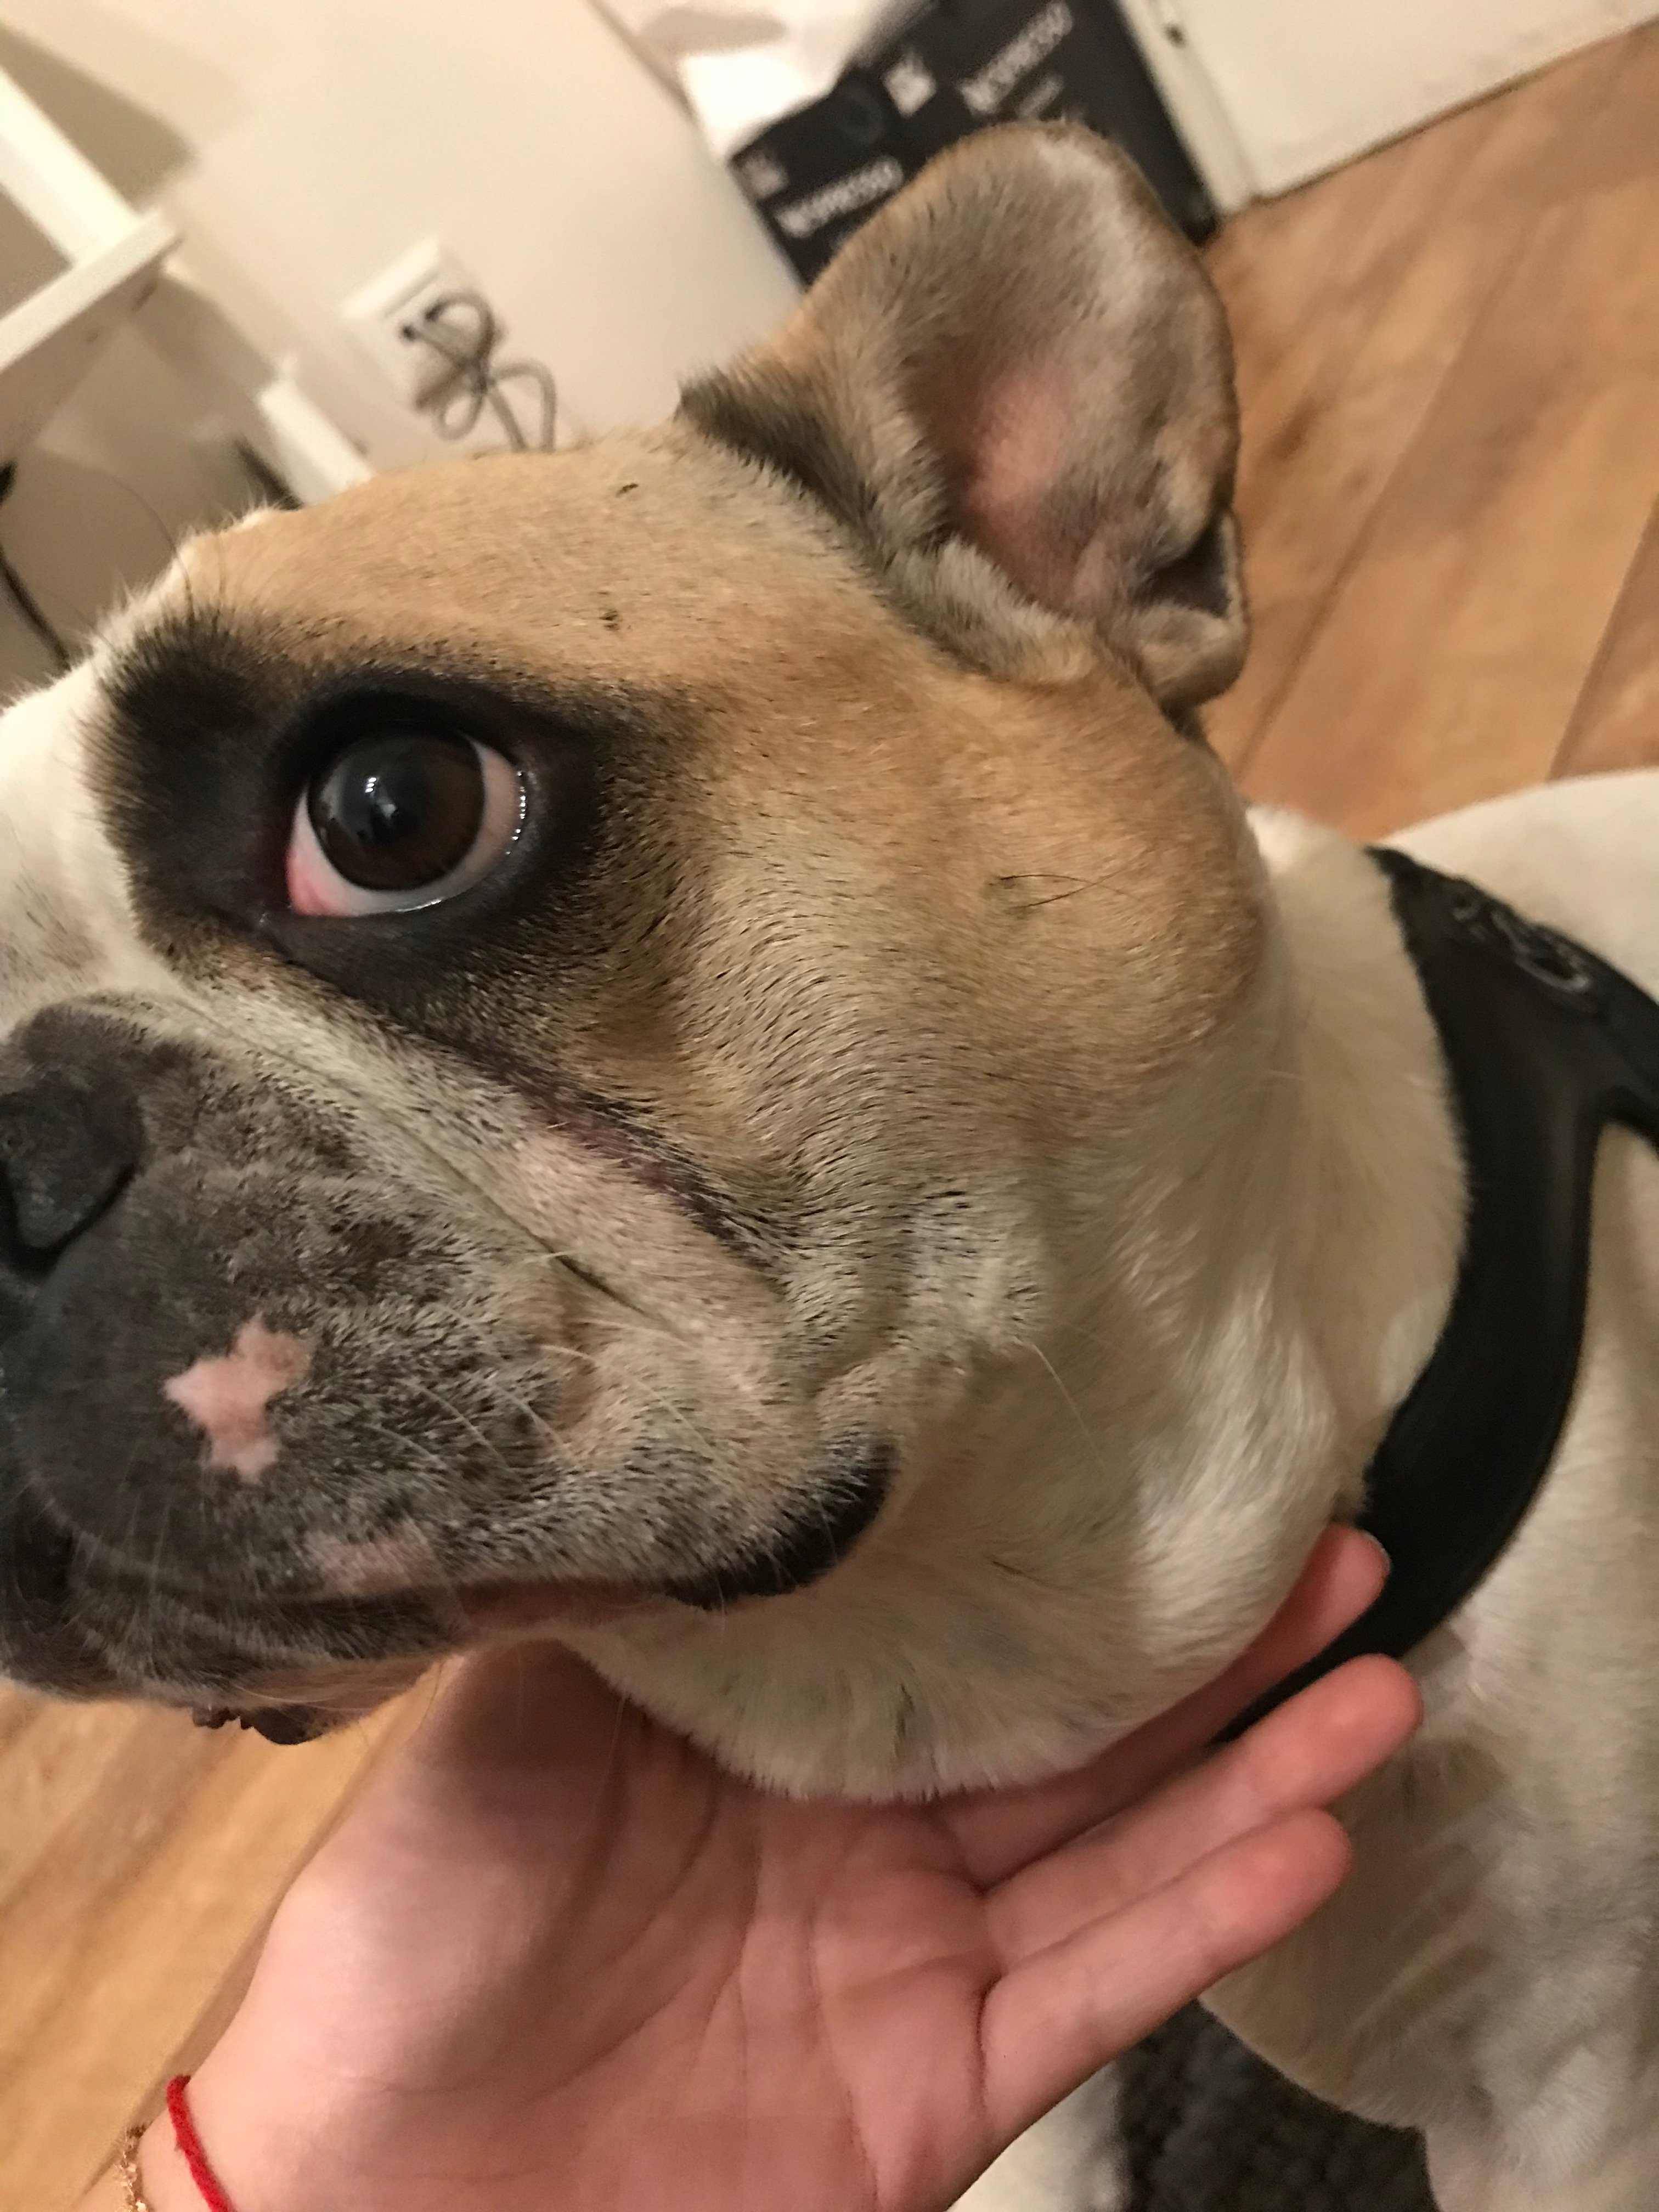 My french bulldog developed a lump on the side of his neck